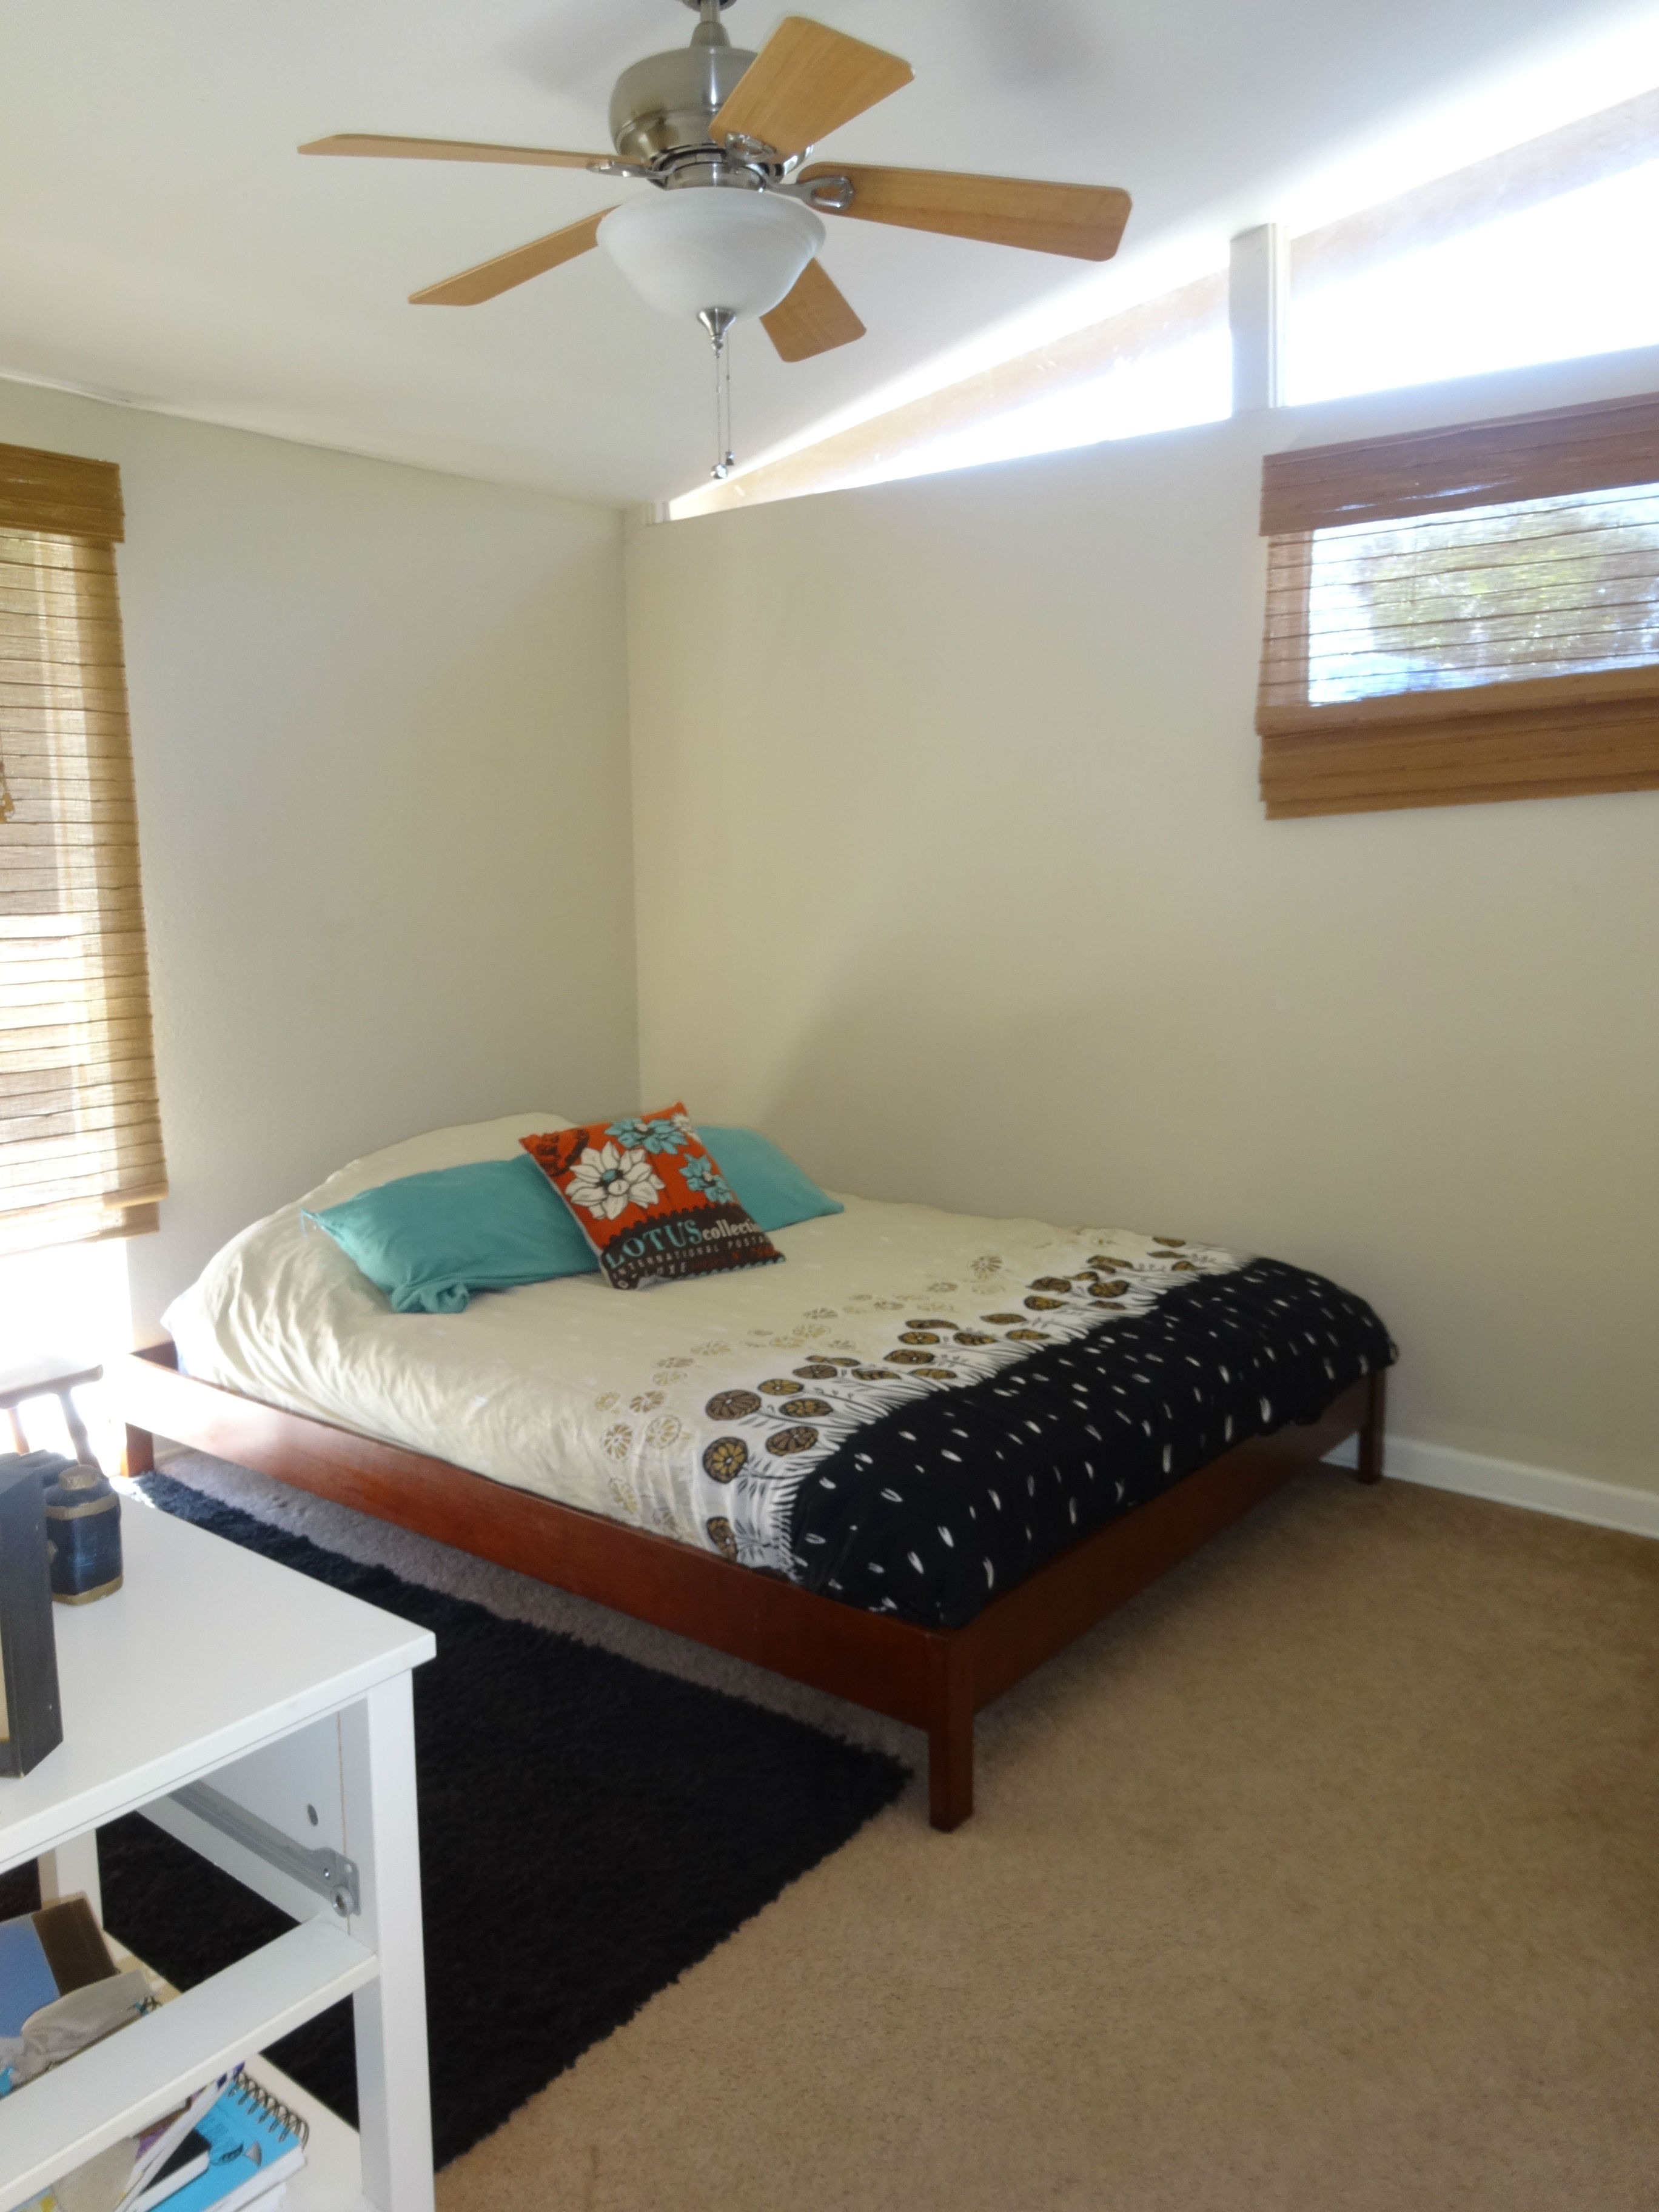 Second bedroom with ceiling fan, cathedral ceiling and ample closet space.